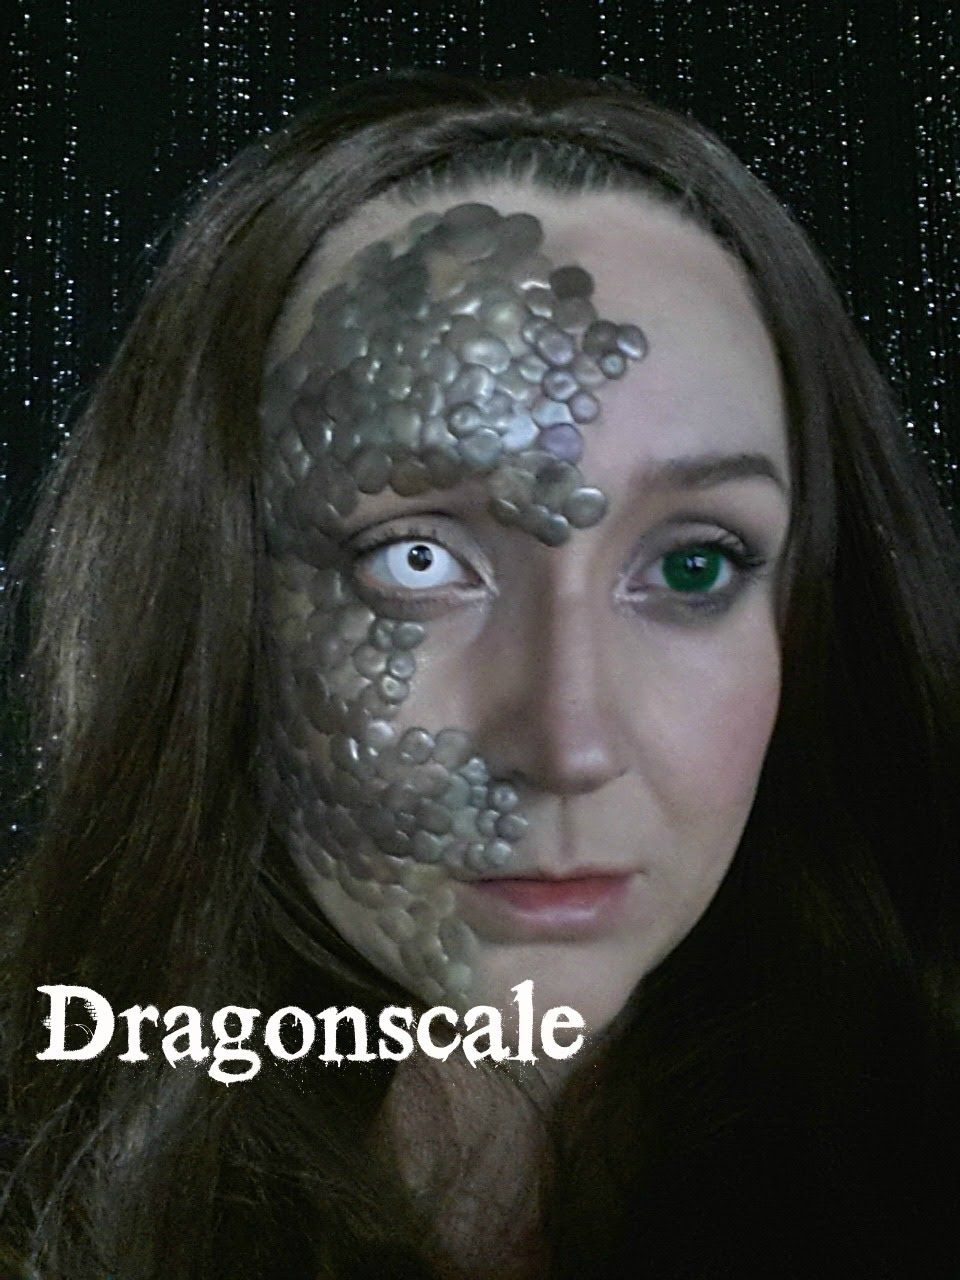 Dragonscale makeup tutorial game of thrones got pinterest dragonscale makeup tutorial game of thrones baditri Images